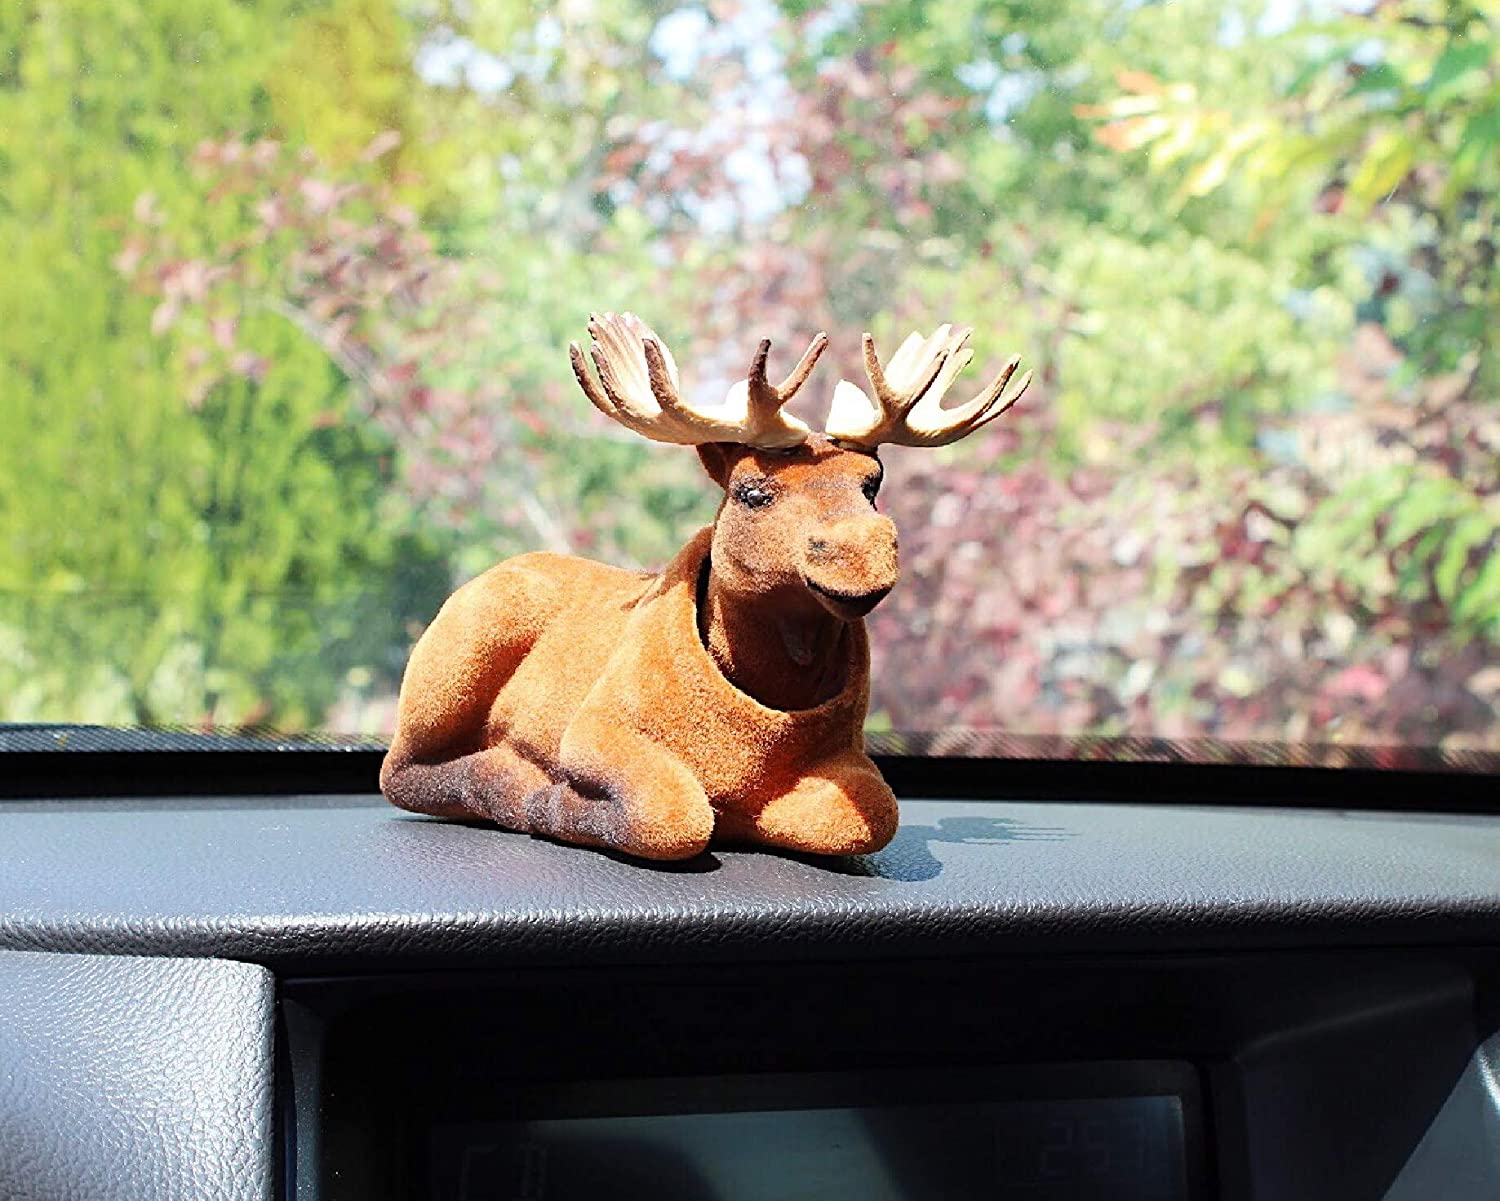 Batty Bargains Mighty Bobblehead Moose with Auto Dashboard Adhesive (Light Brown)